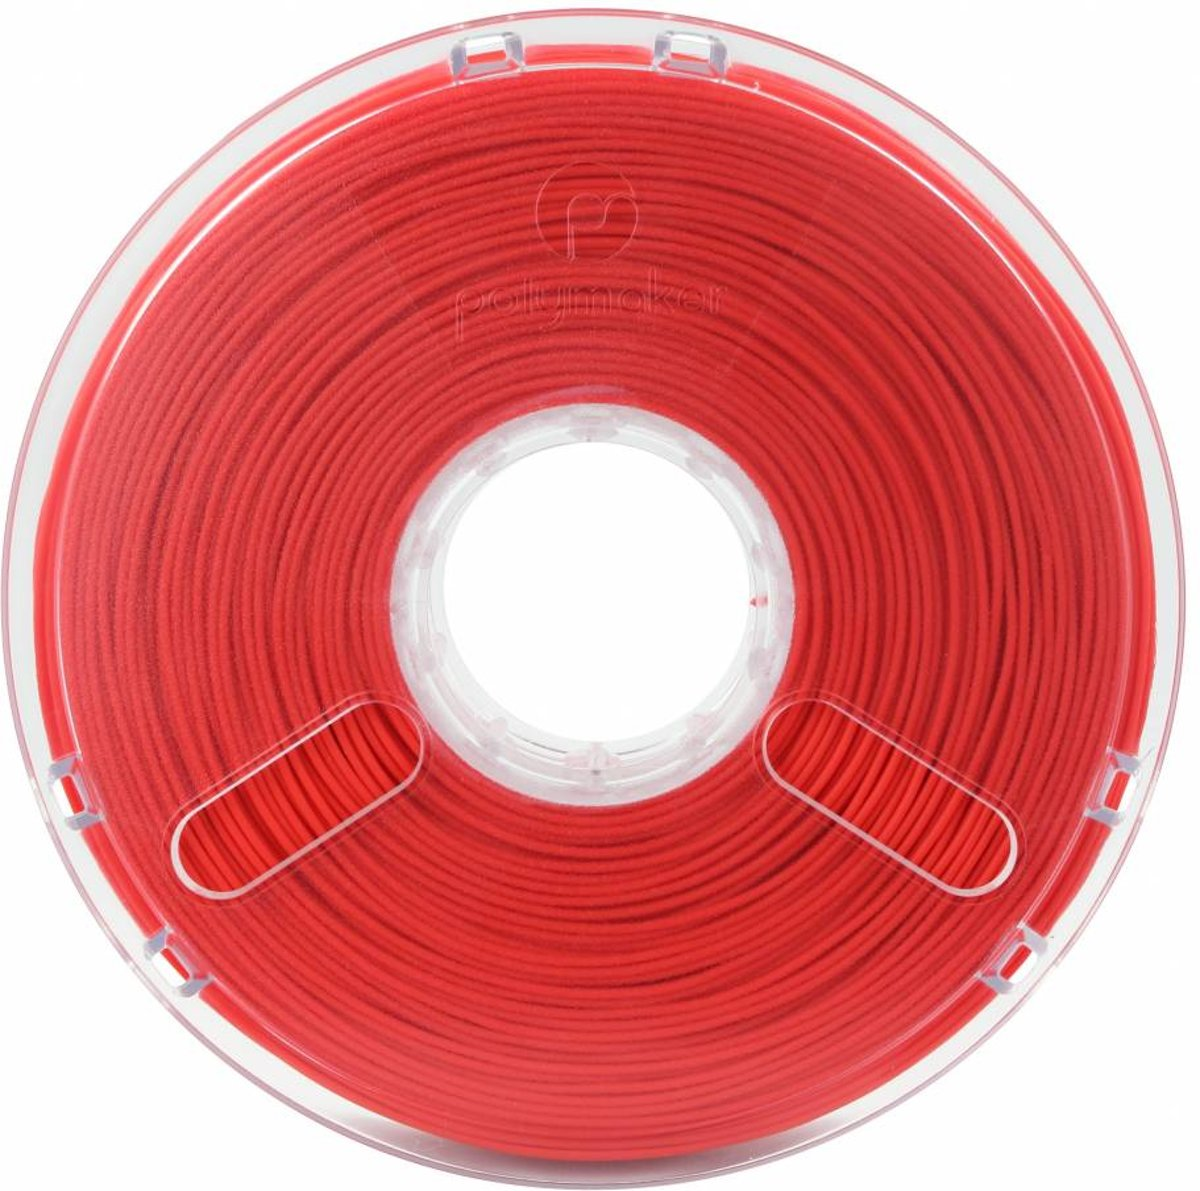 Polymaker Filament voor 3D-printer PolyMax PLA Jam Free Technology 2.85 mm 0.75 kg - True Red